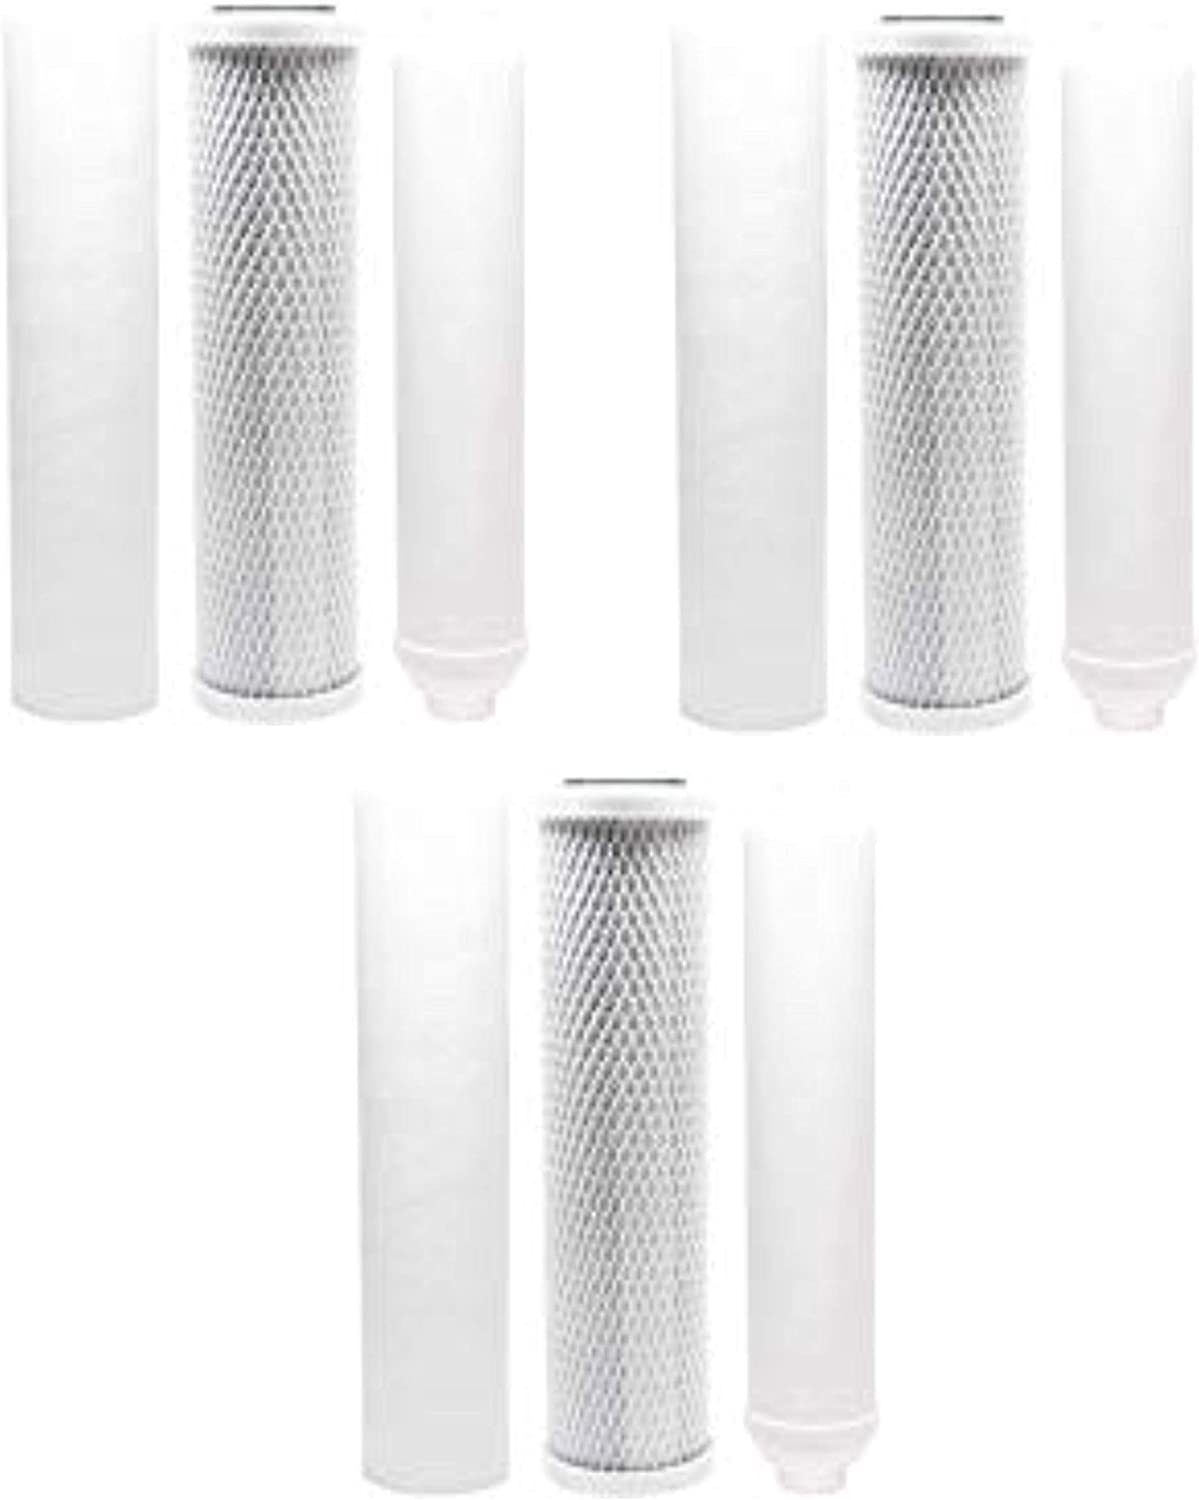 Replacement Filter Kit Compatible with Rainsoft 9596 RO System Includes Carbon Block Filter PP Sediment Filter /& Inline Filter Cartridge Denali Pure Brand